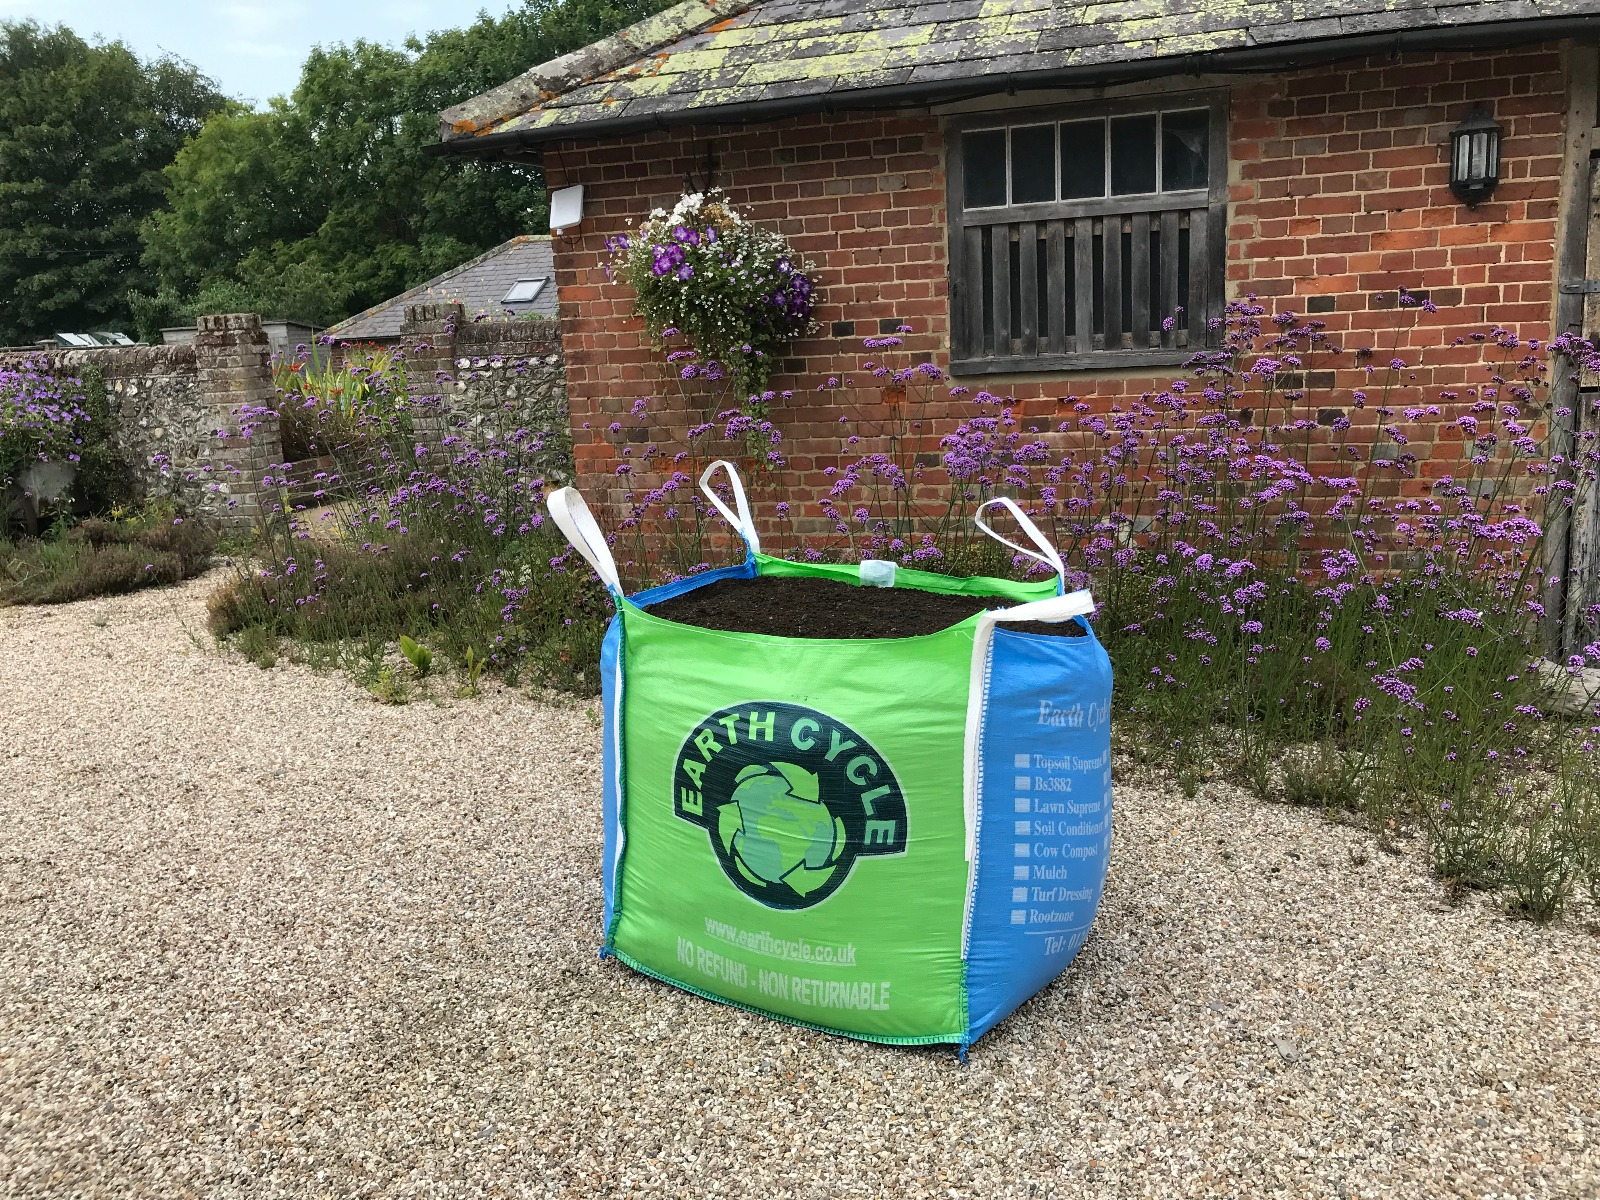 Earth Cycle Compost